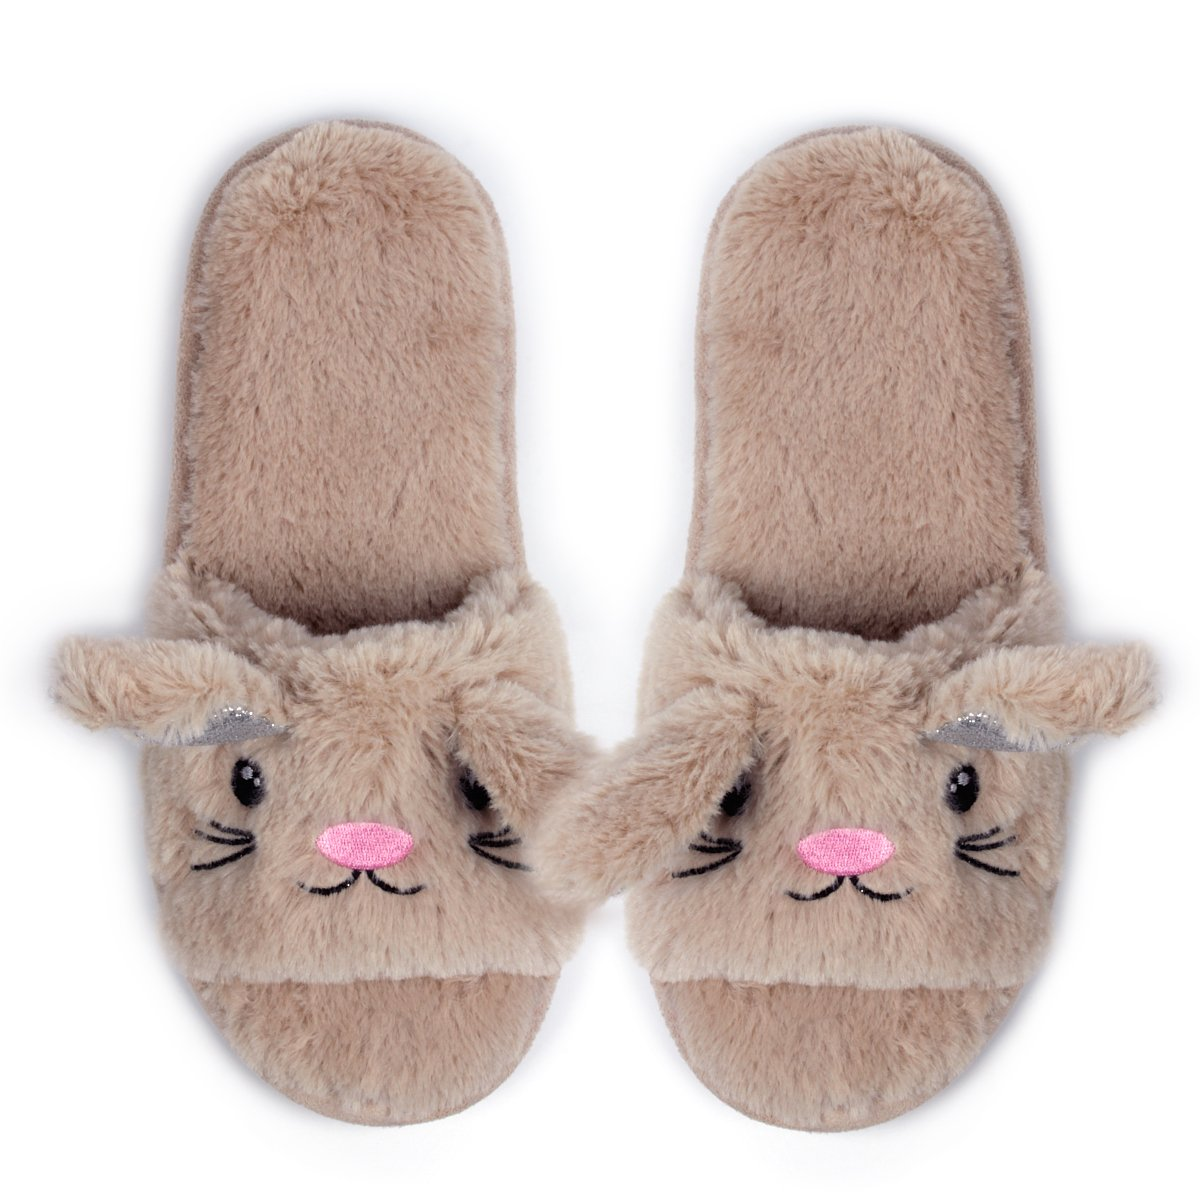 Womens Open Toe Slippers | Cute Bunny Unicorn Animal Slipper | Soft Fleece Memory Foam Clog | Anti-Slip Sole Indoor Outdoor Shoes | Flip Flop Spa Slippers (9-10, BrownBunny) by Caramella Bubble (Image #4)